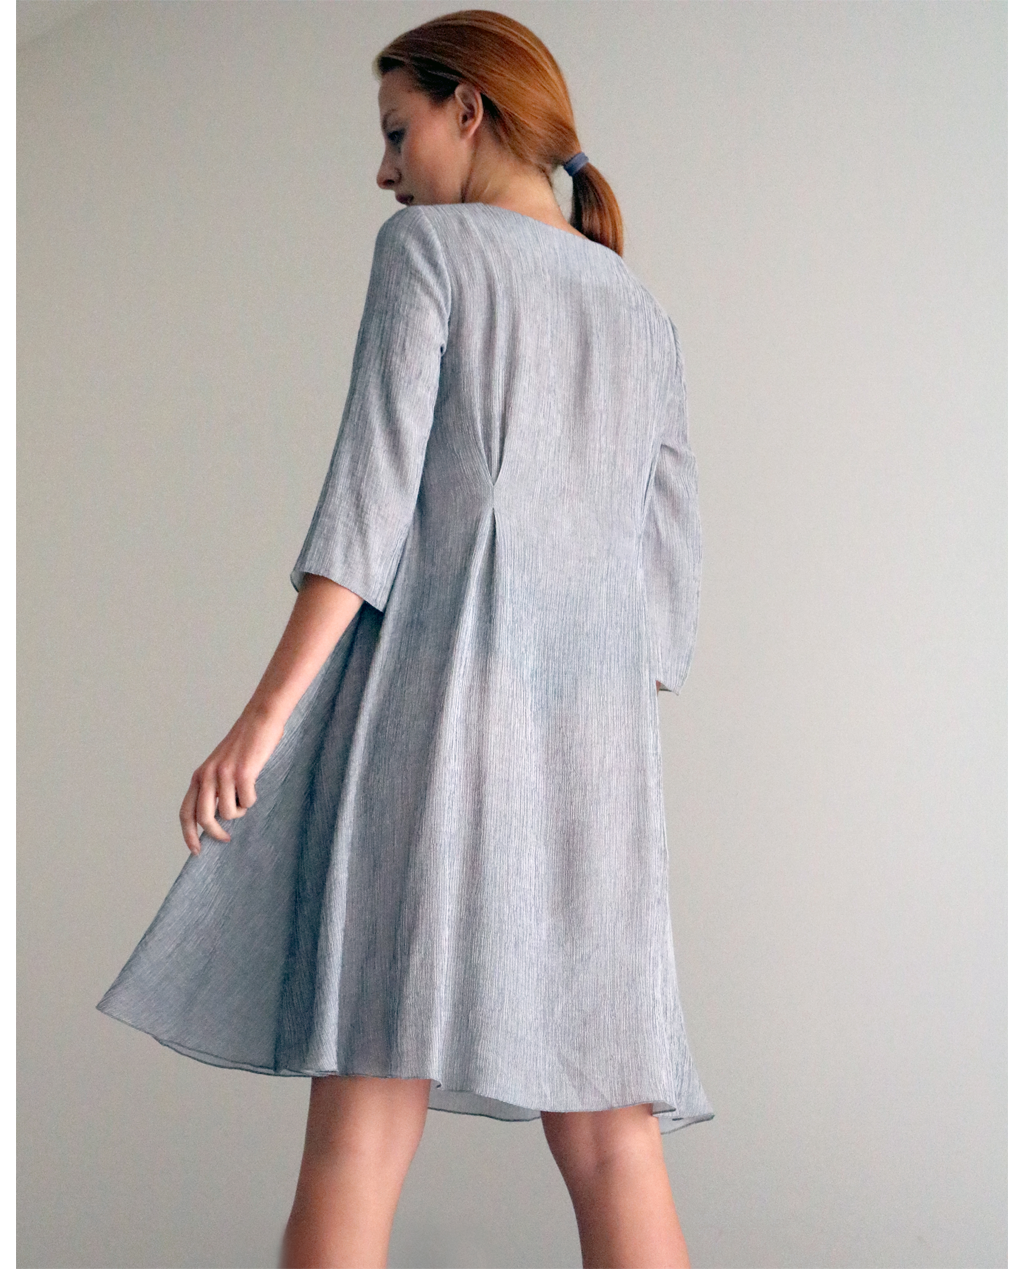 Adelaine Mini dress from Adelaine series short in A line silhouette, light and breezy featuring 3/4 sleeves and darts at the back for better fit